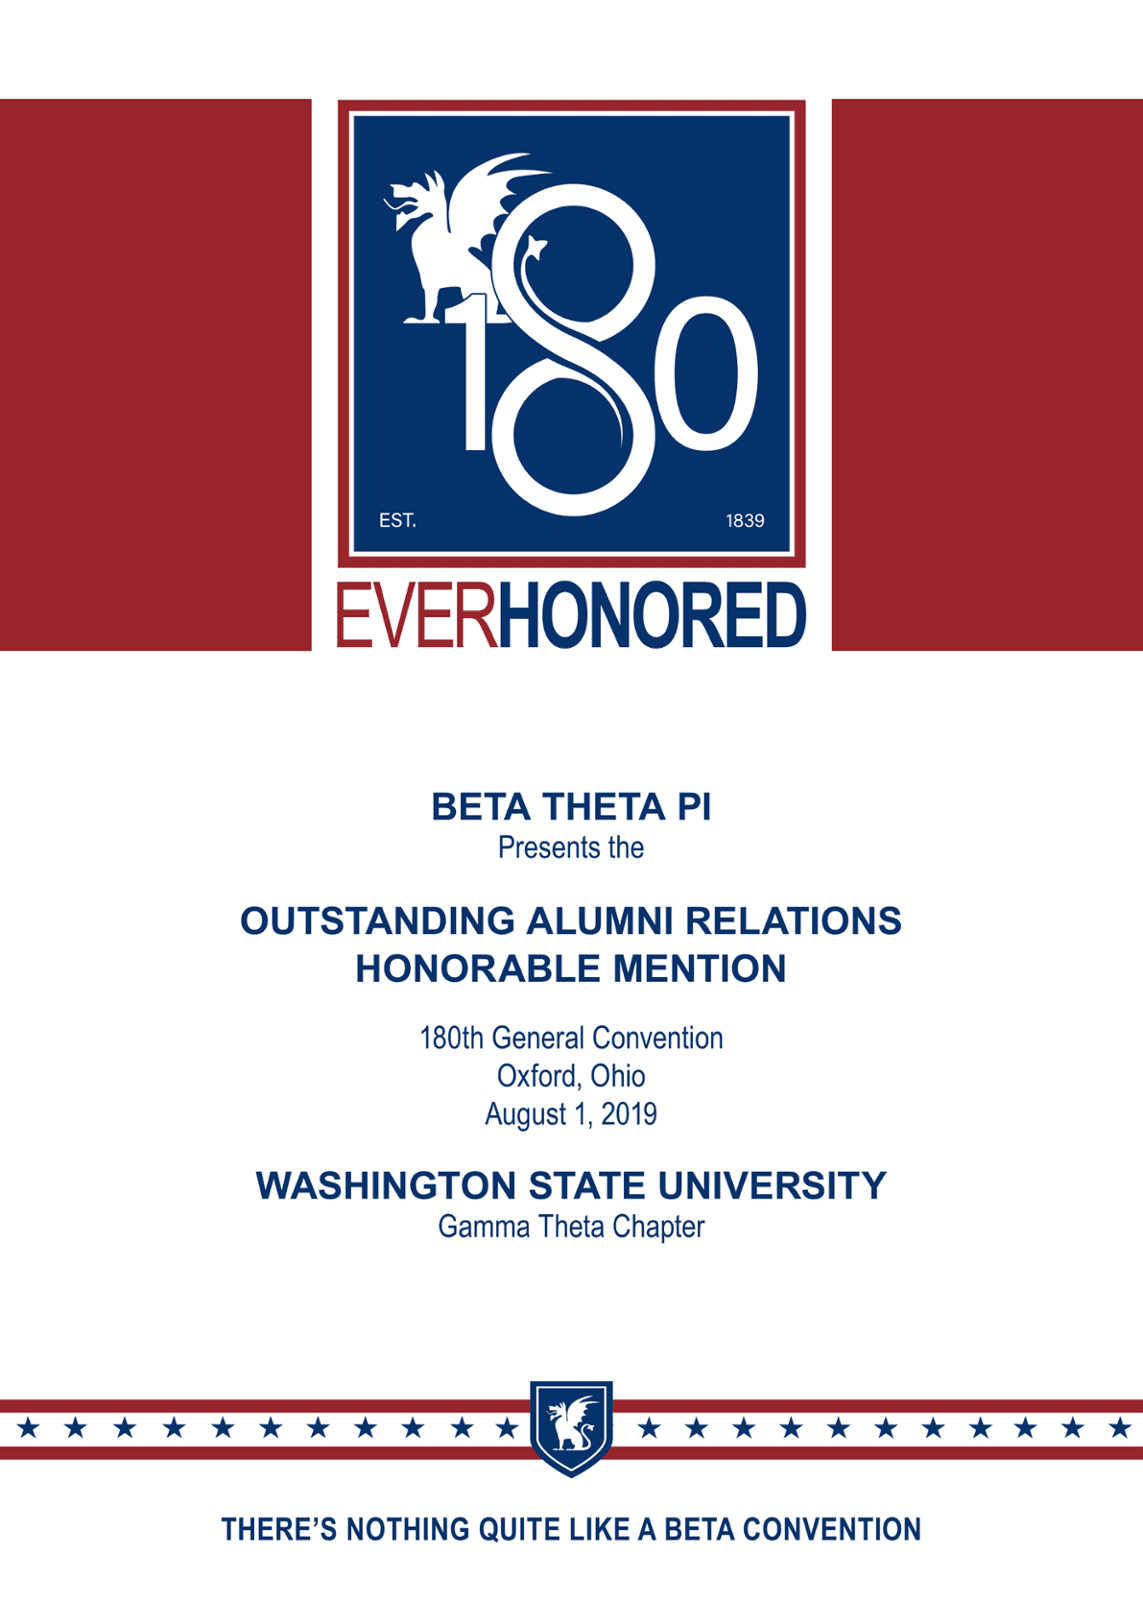 Outstanding Alumni Relations - Honorable Mention